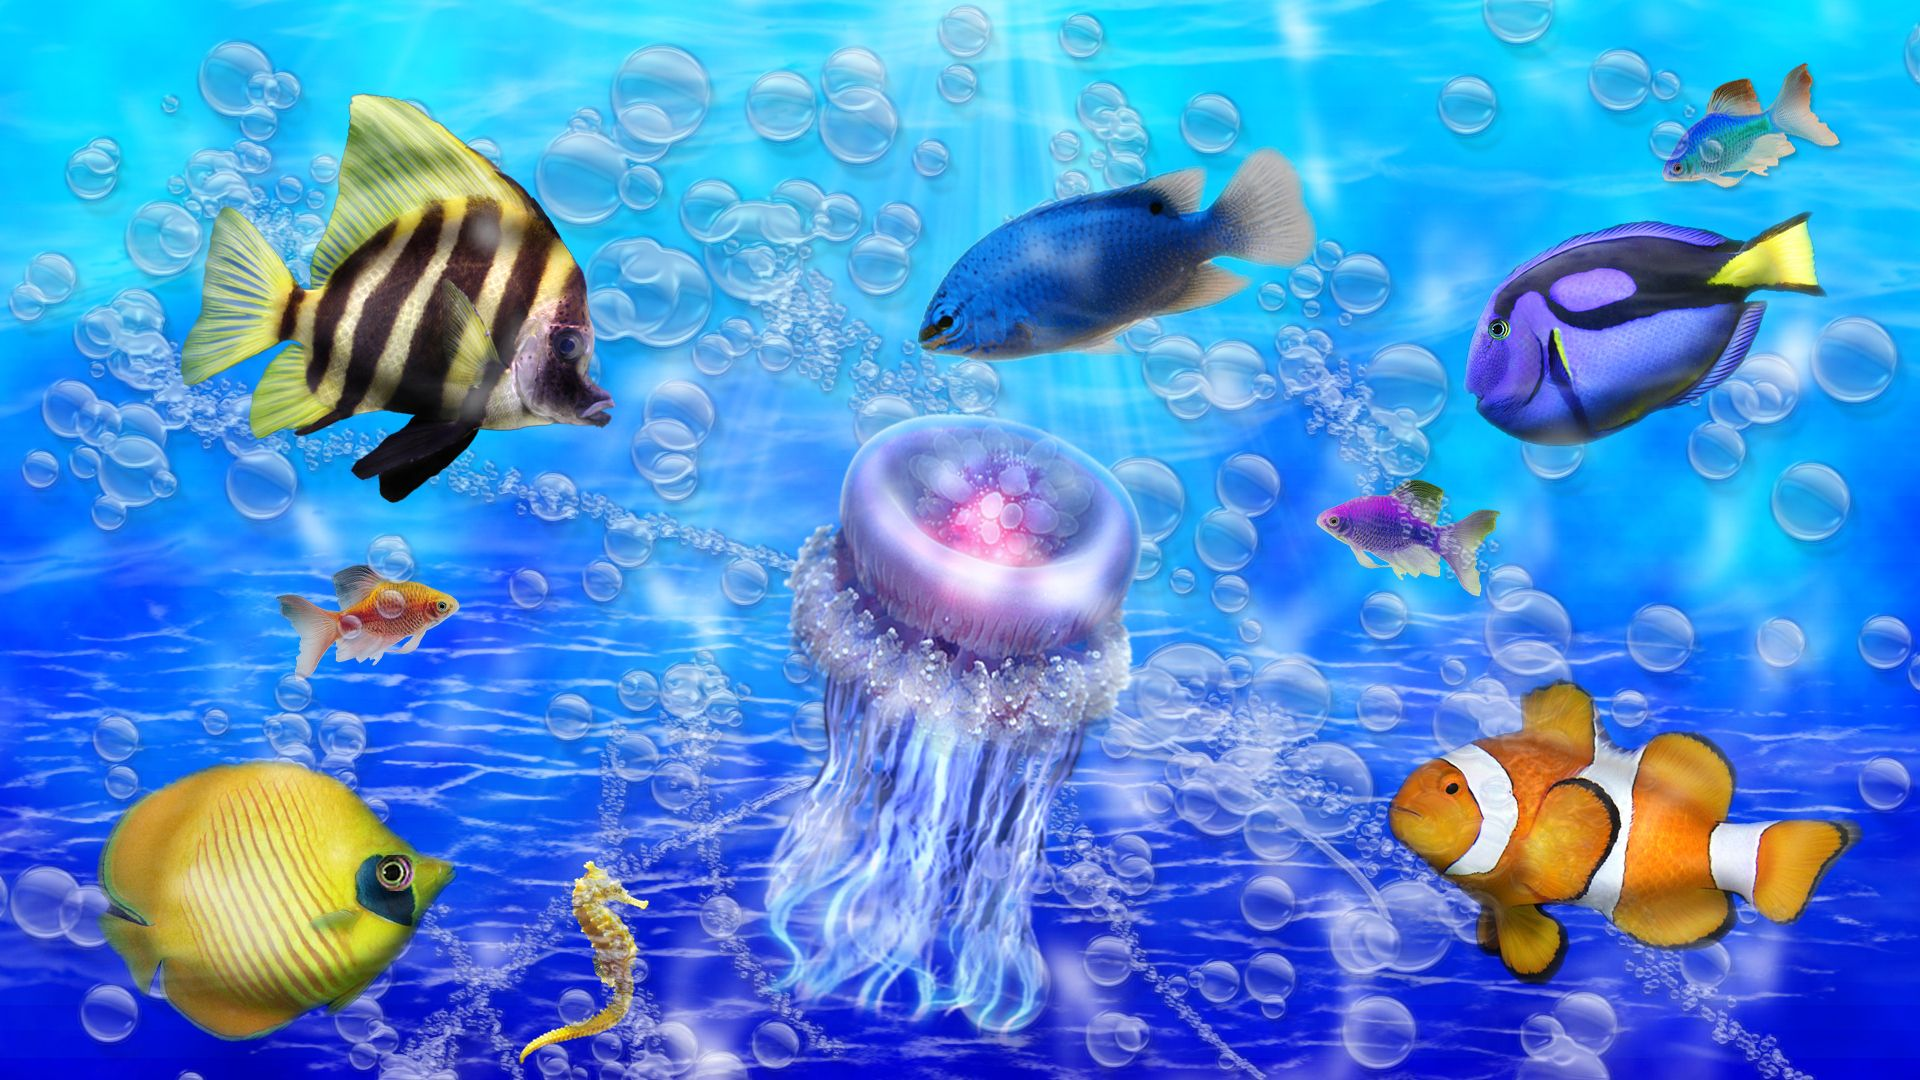 Pictures Of Ocean Fish Ocean In Color Beautiful Colorful Fish Jel 2394 Hd Fish Wallpaper Colorful Fish Fish Under The Sea